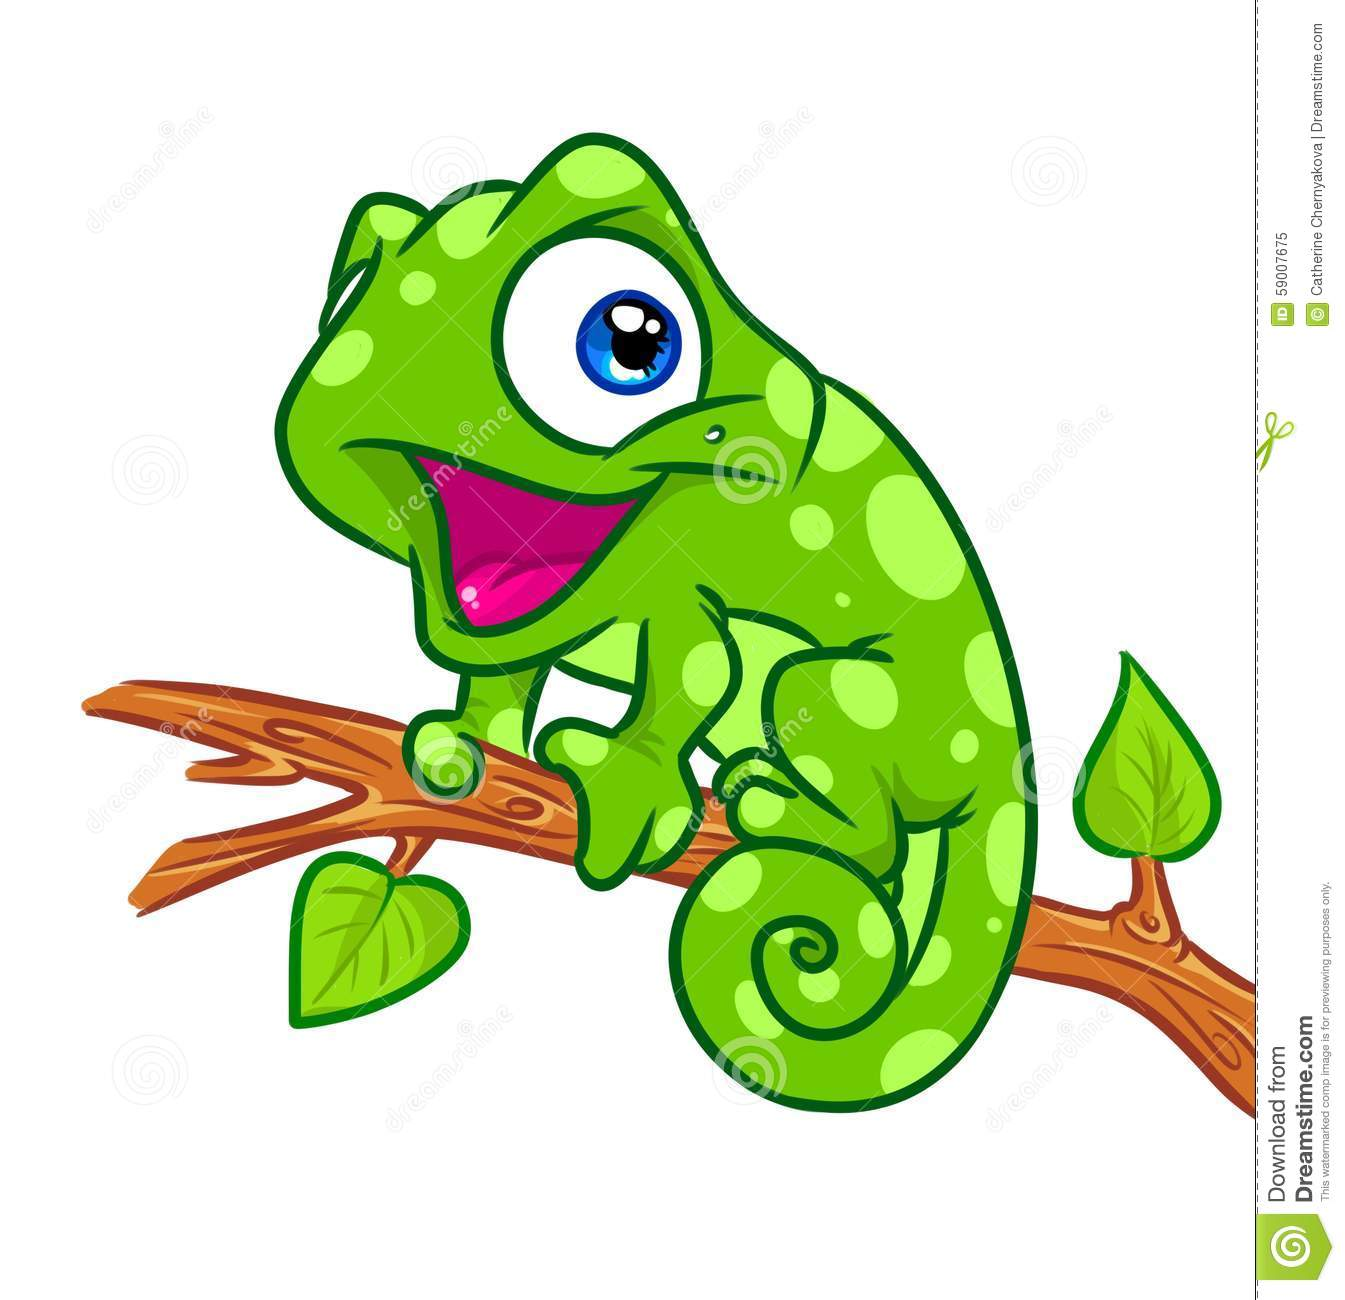 Cheerful Chameleon Tree Branch Cartoon Illustration Stock Illustration ...